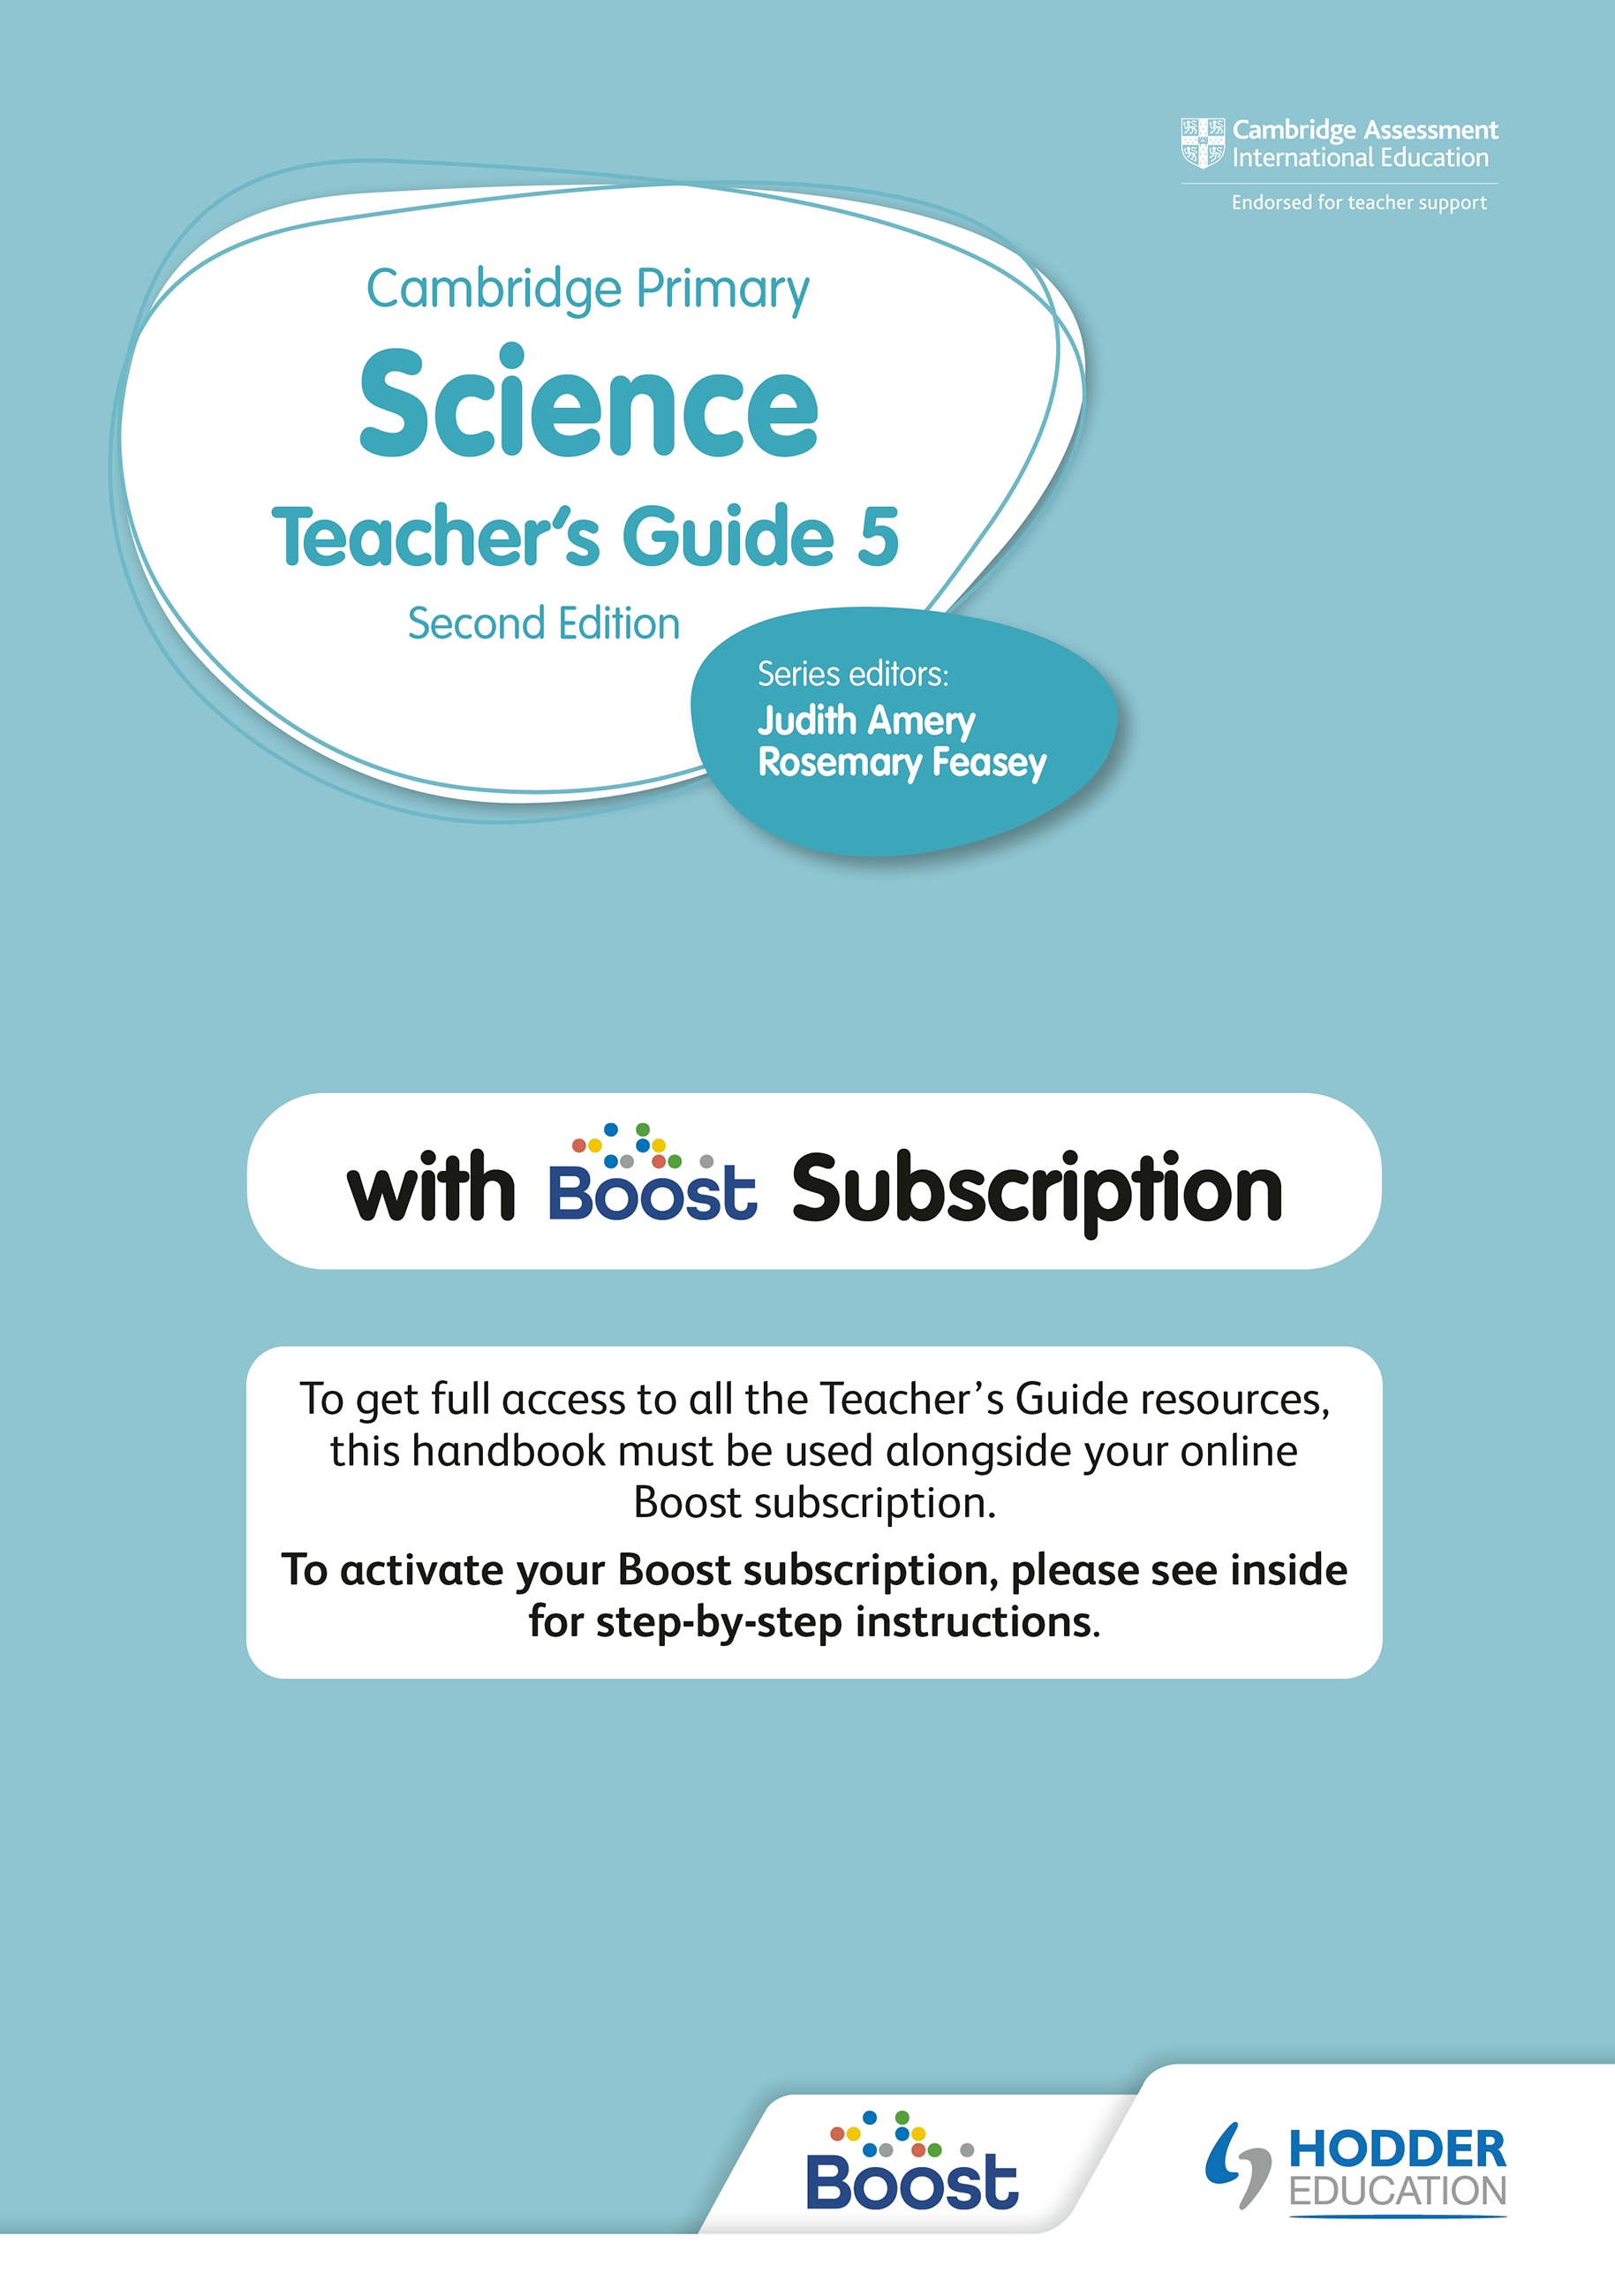 Cambridge Primary Science Teacher's Guide 5 with Boost Subscription